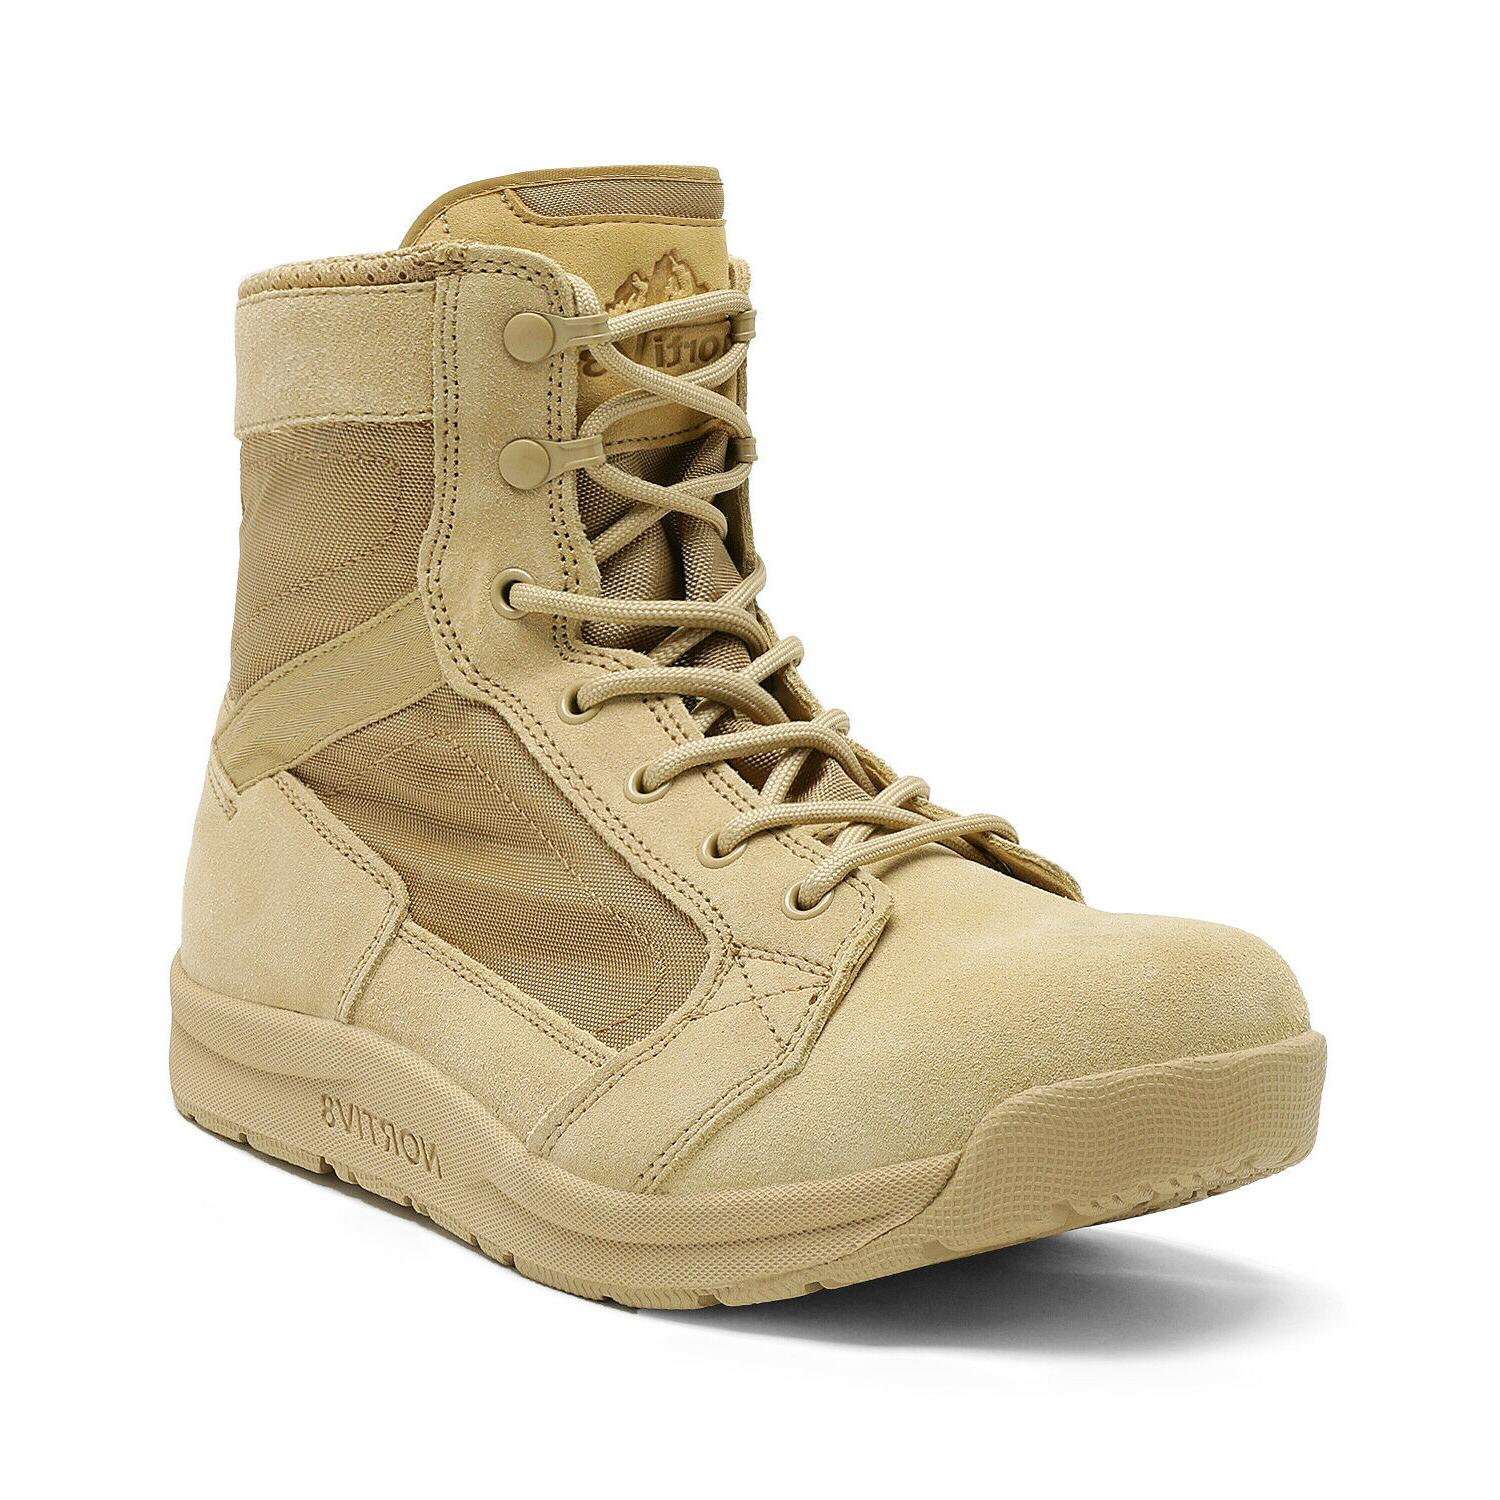 Mens Tactical Army Boots Lightweight Hiking Work Shoe